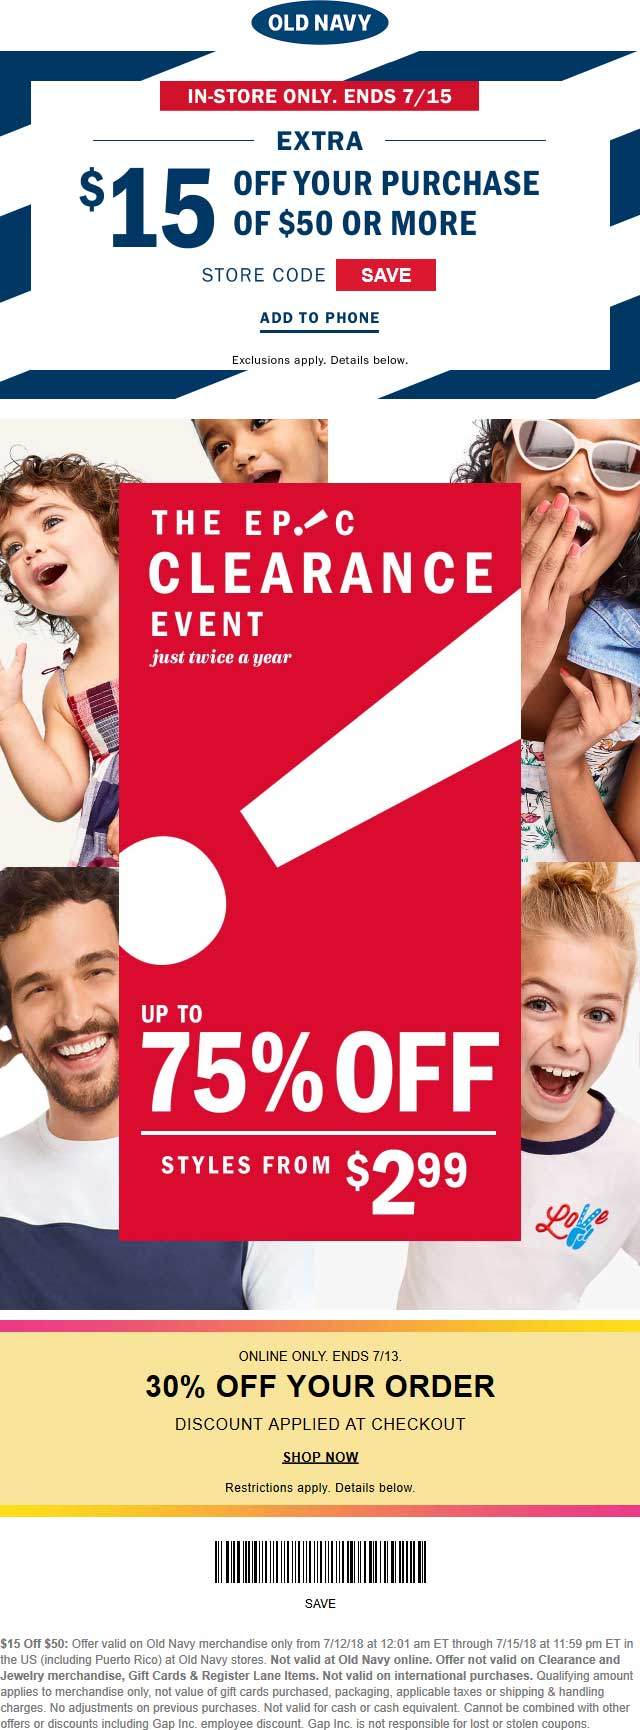 Old Navy Coupon February 2019 $15 off $50 at Old Navy